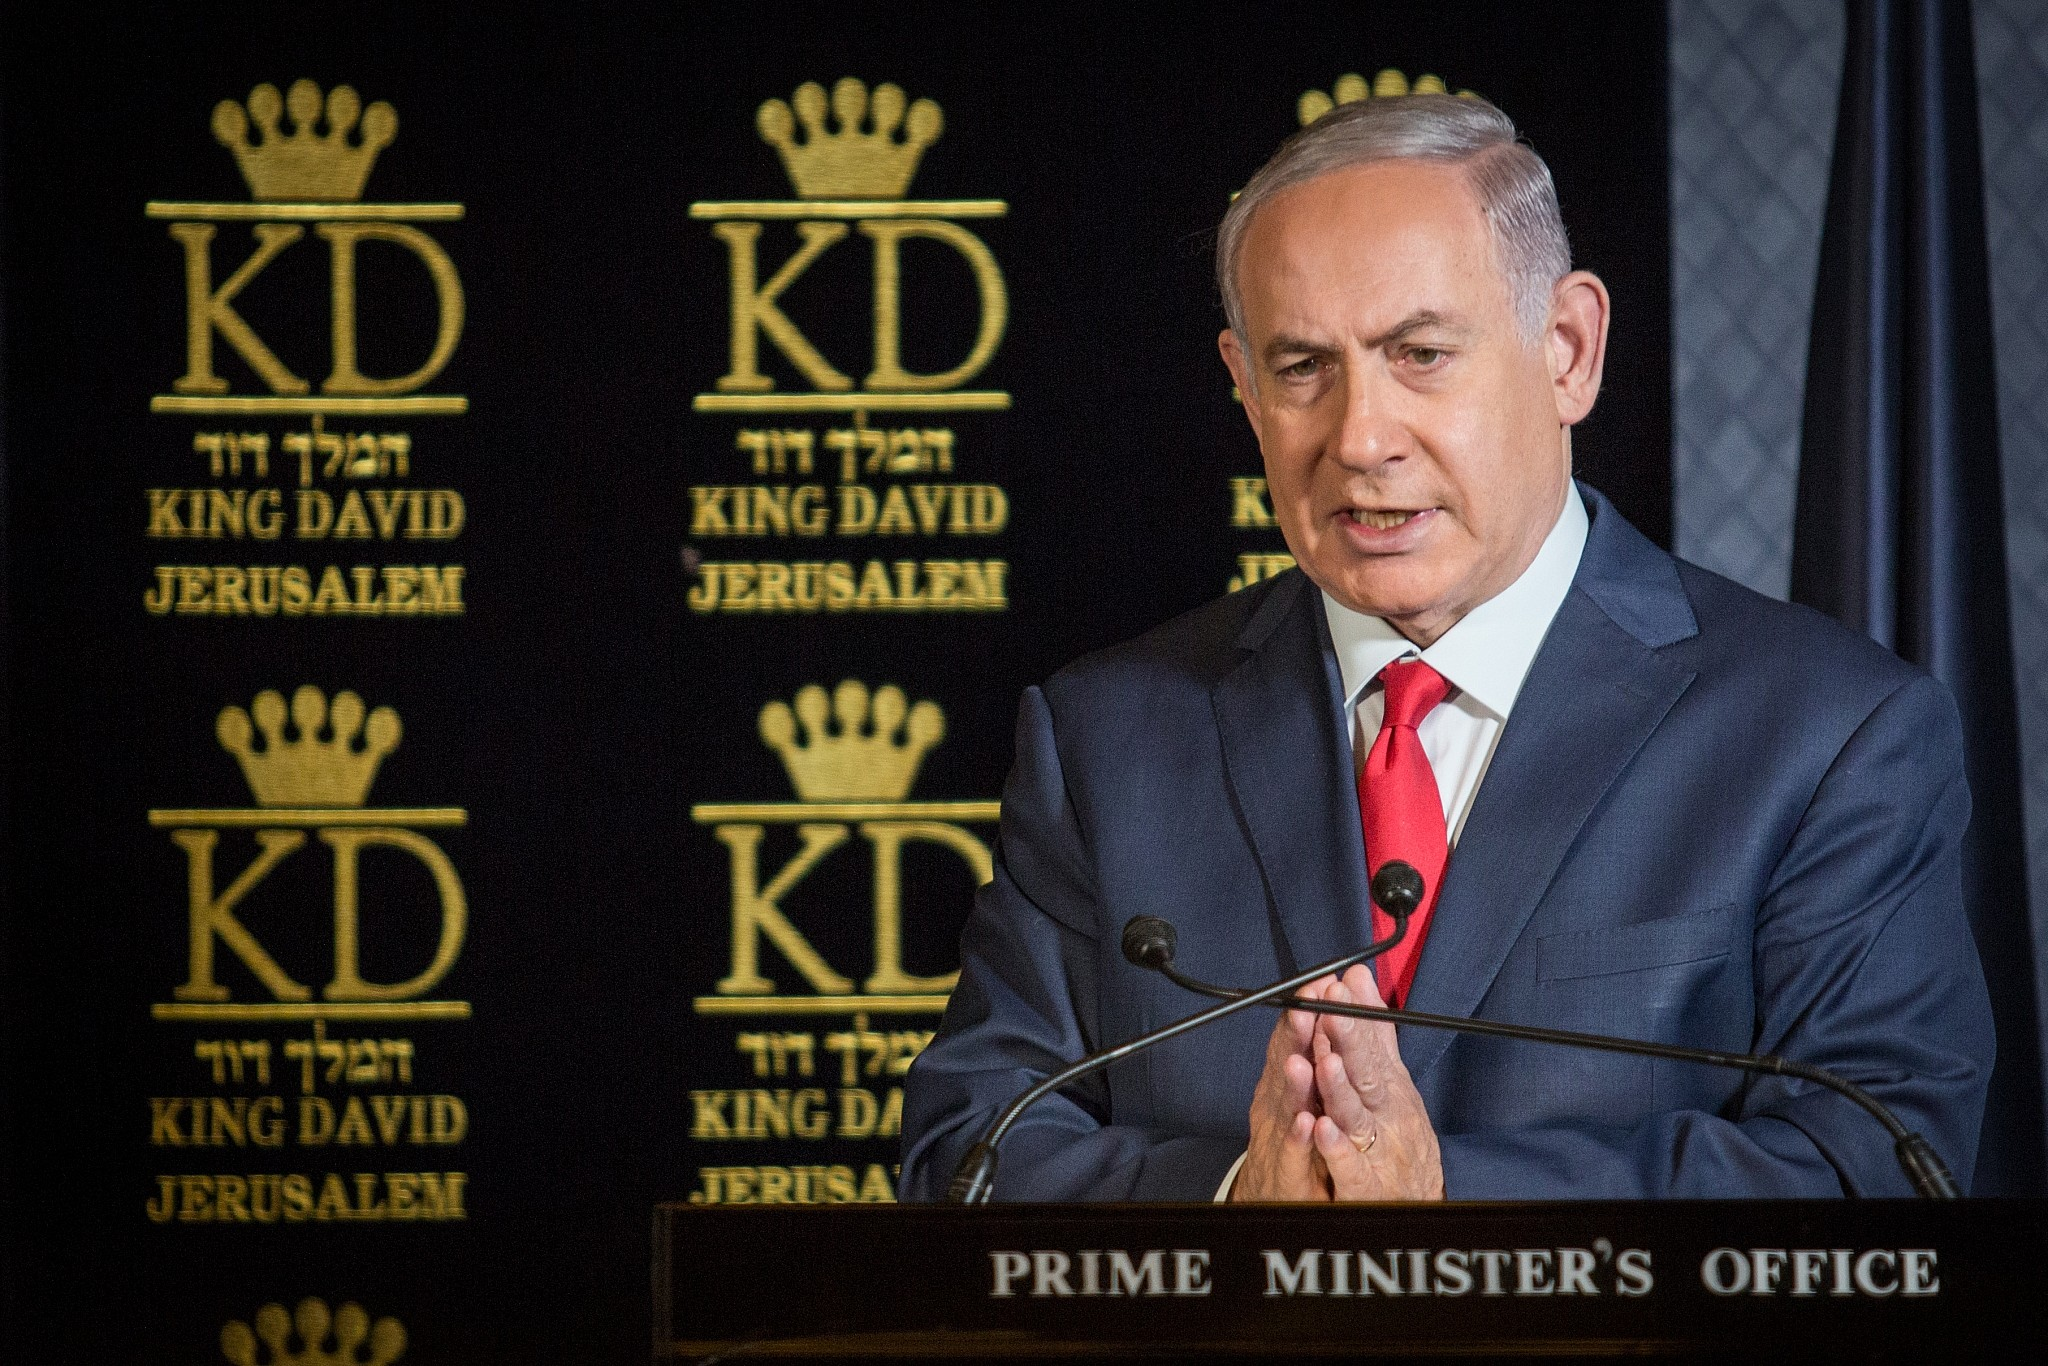 Israël - Corruption : Une affaire de 20 milliards de dollars embarrasse Netanyahu